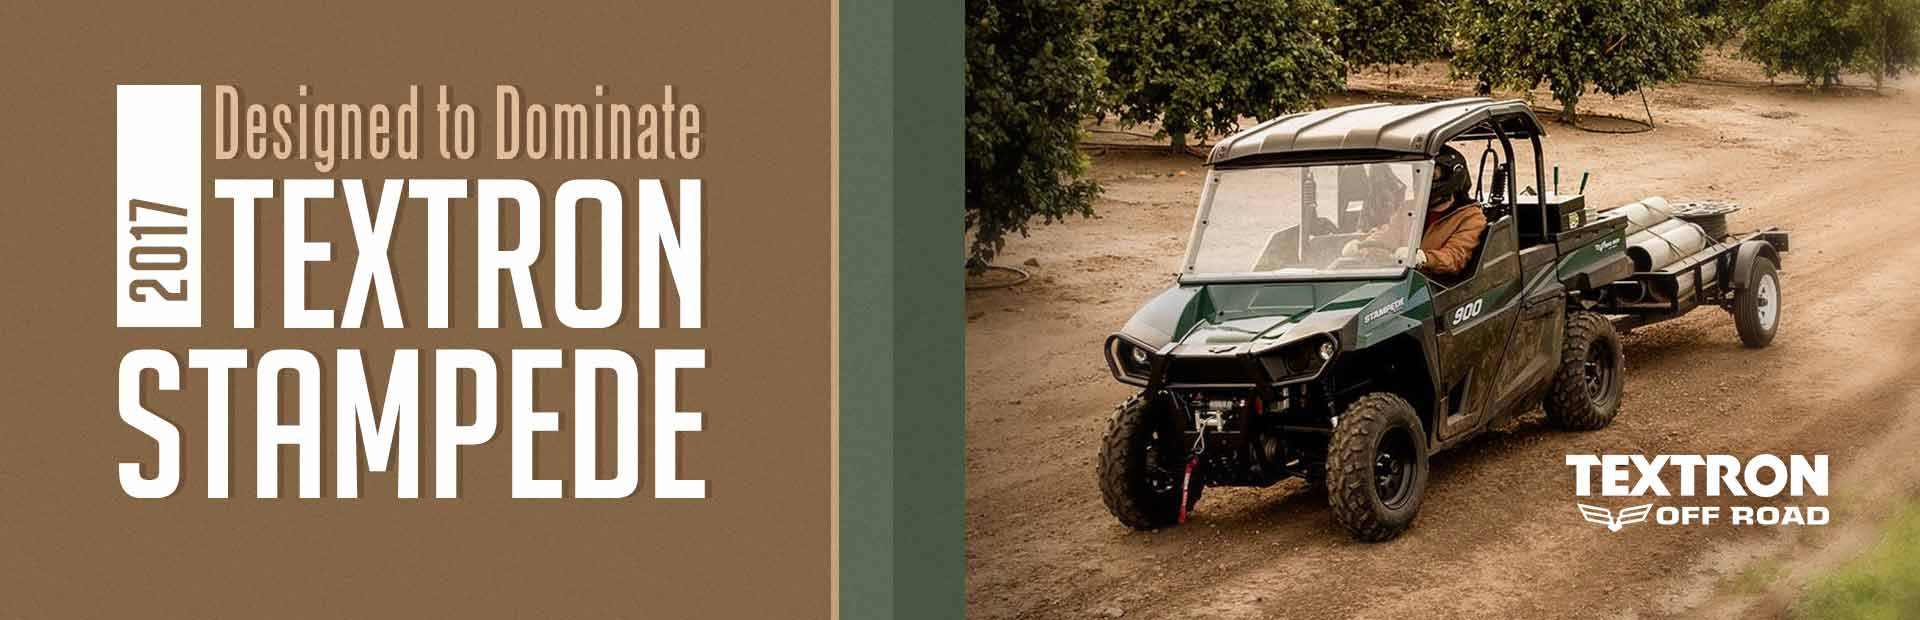 2017 Textron Off Road Stampede: Click here to view the model.